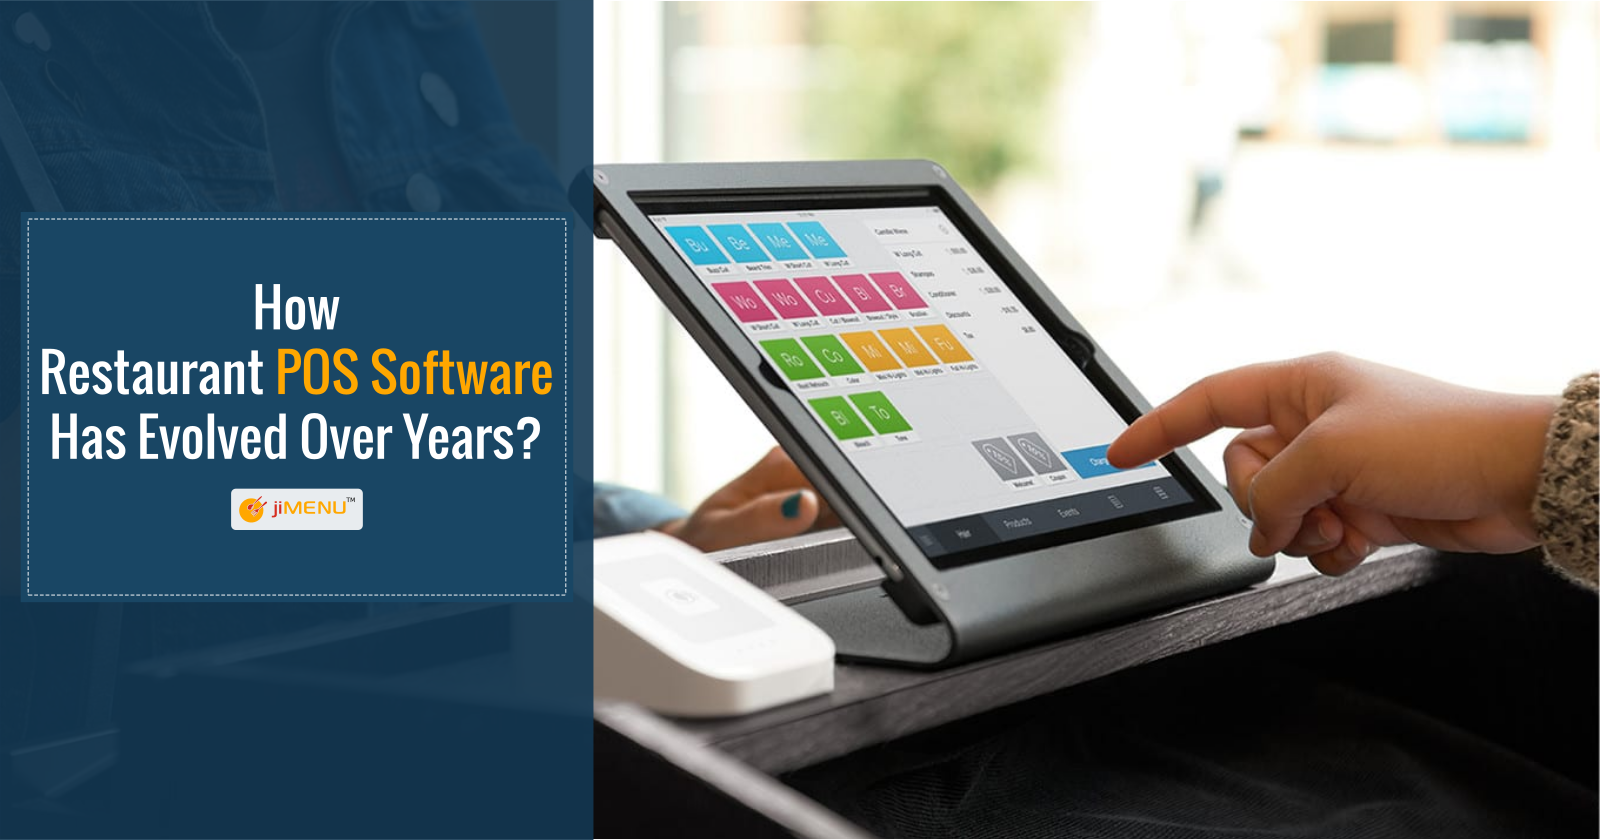 How Restaurant POS Software Has Evolved Over Years?